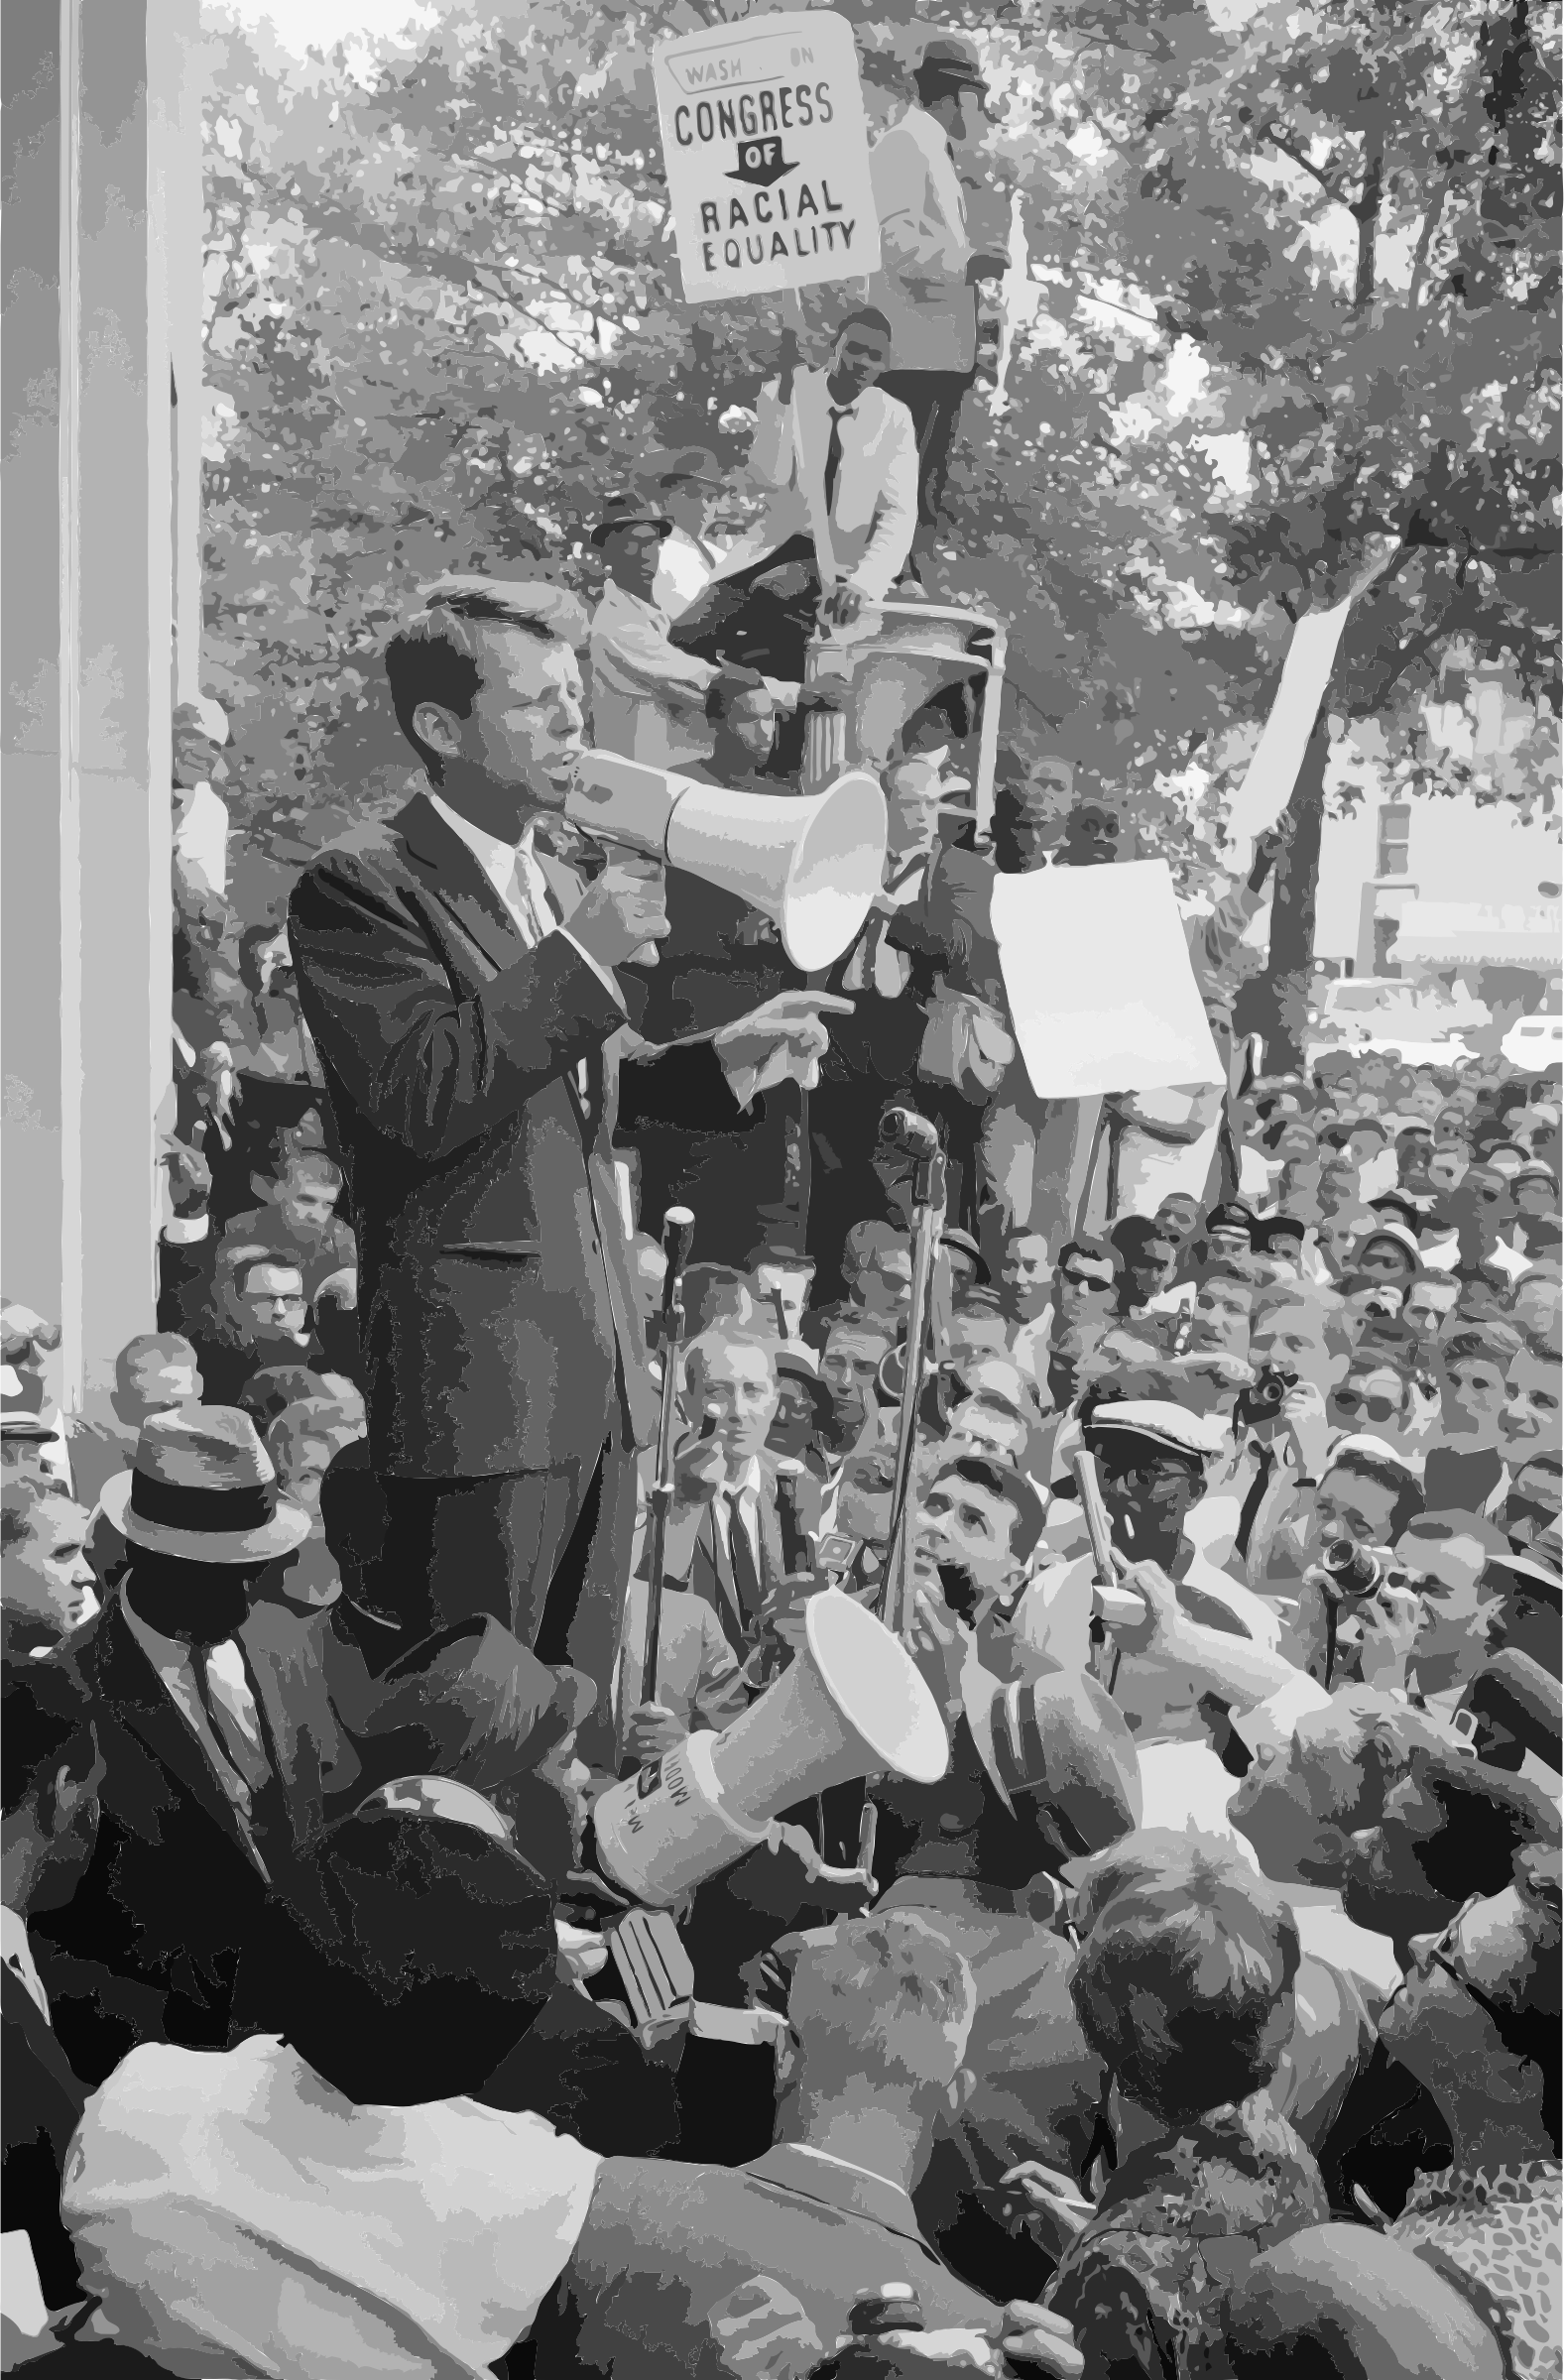 Robert Kennedy CORE rally speech2 by 5ncrcv+exryzbsq0bgao